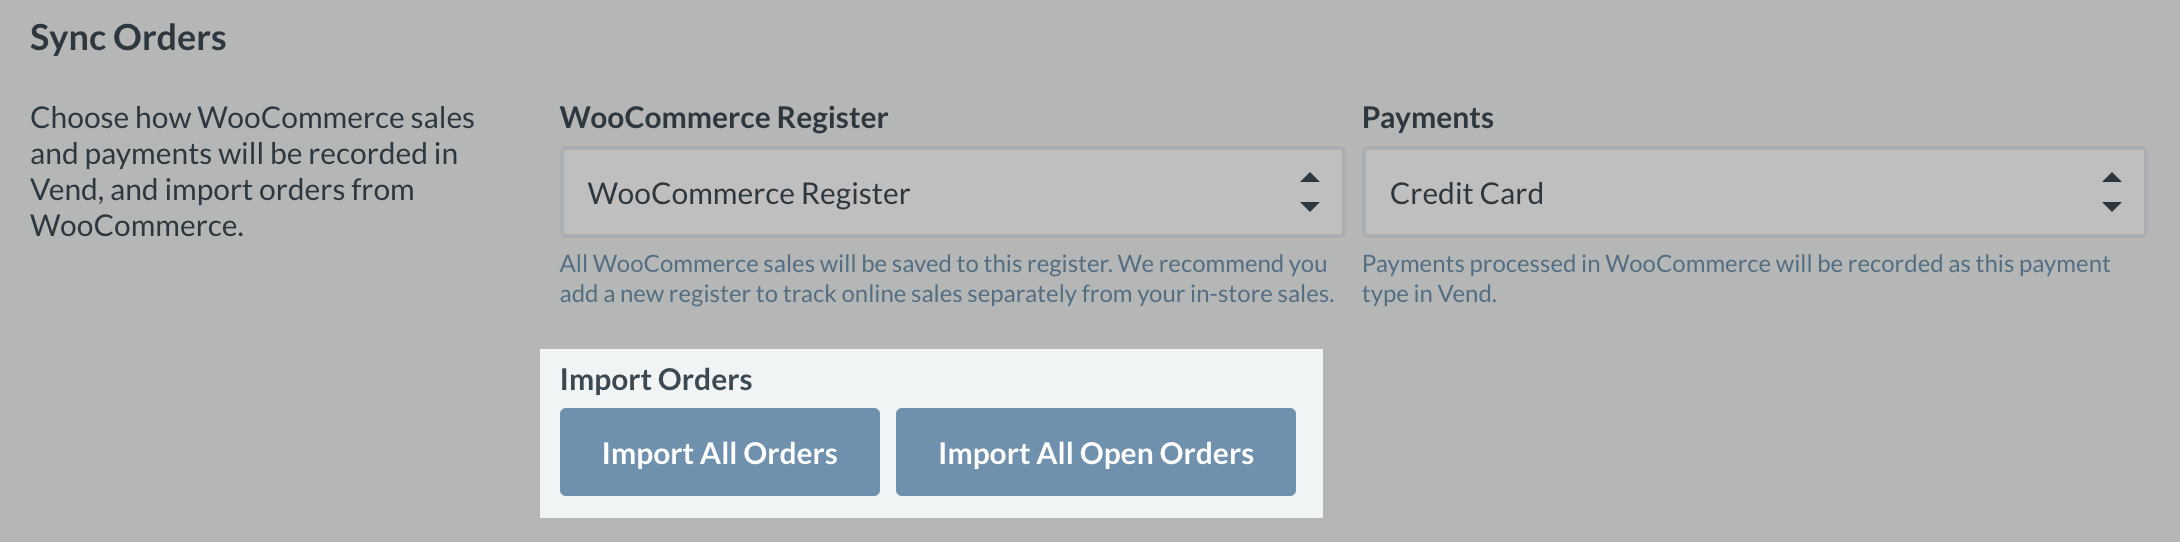 The WooCommerce Integration - How does it work, and how do I